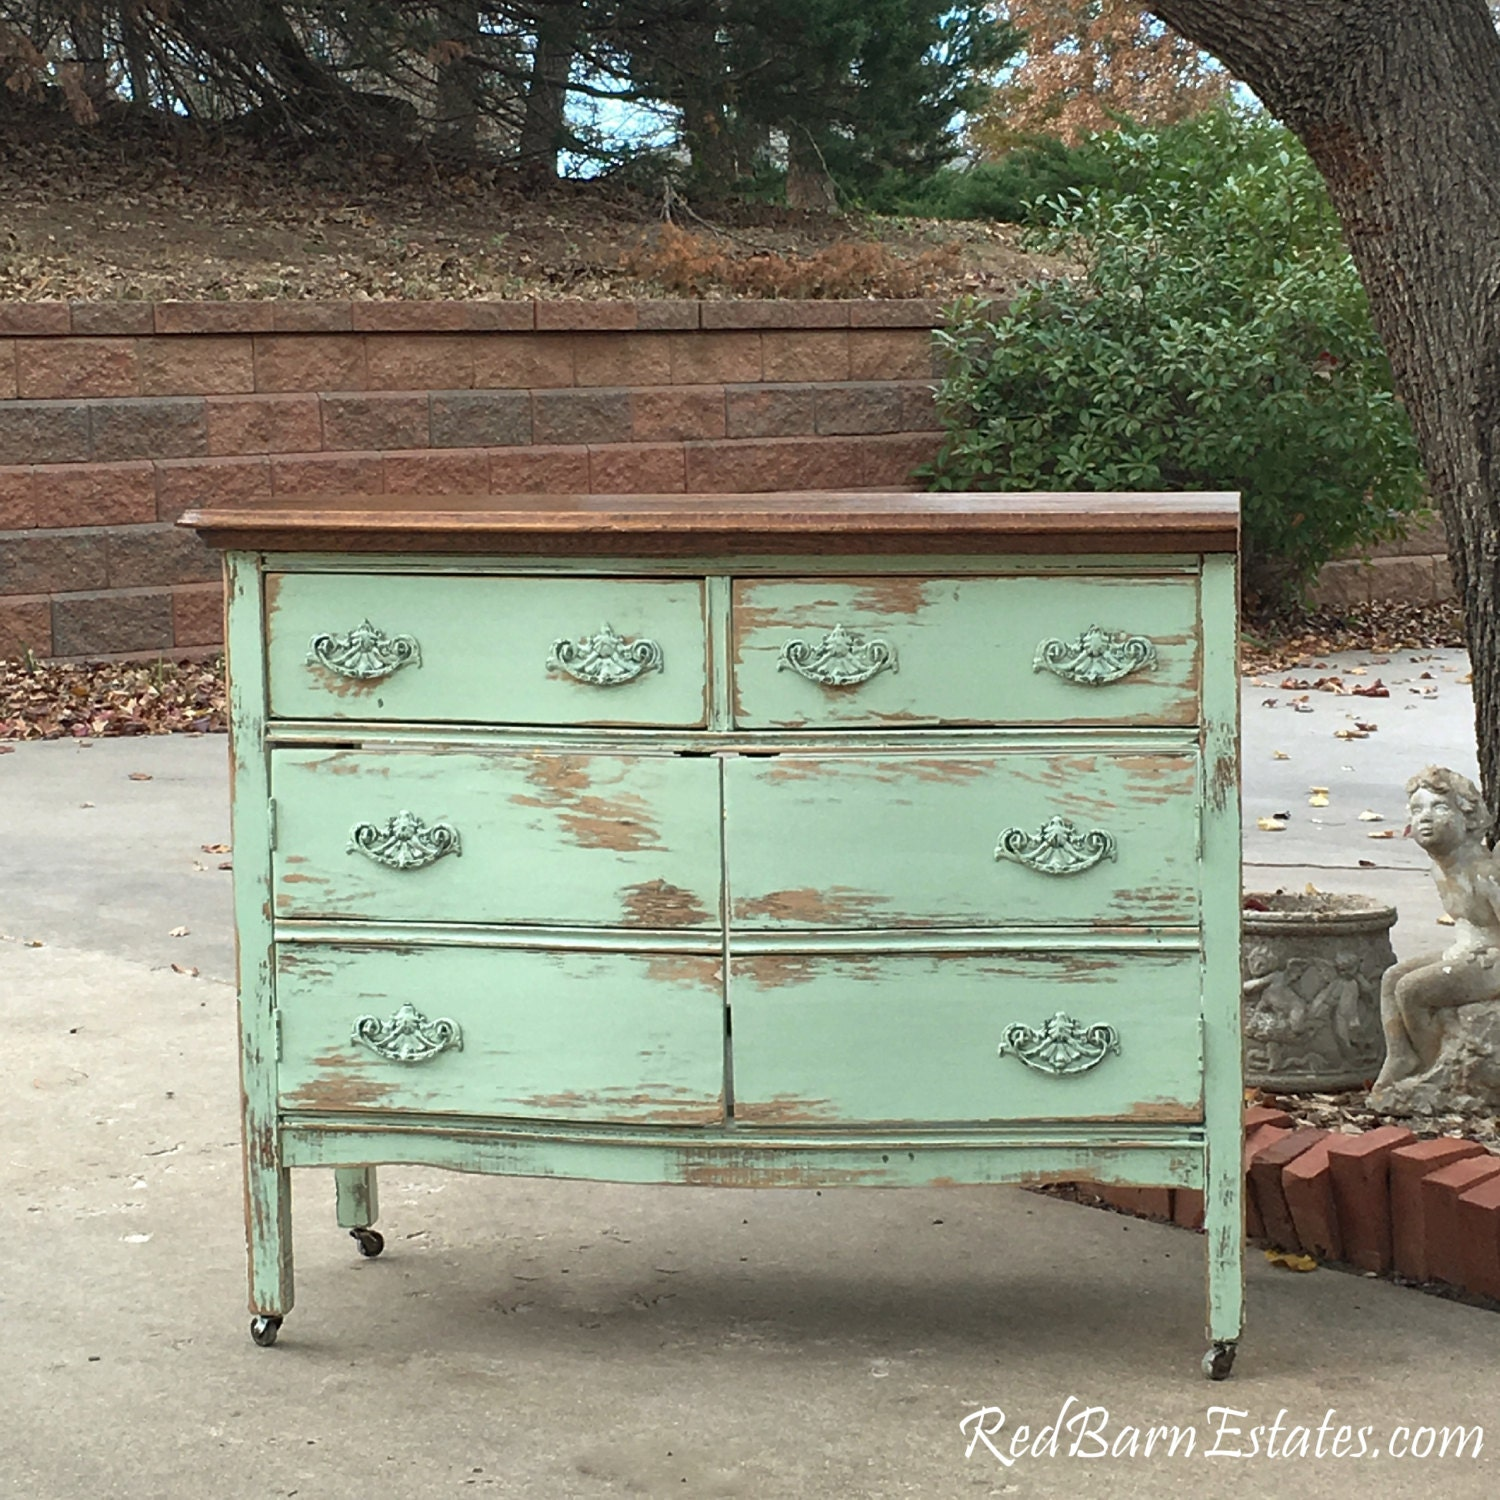 Painting And Distressing Bathroom Cabinets bathroom vanity from antique dresser! we find, restore, convert